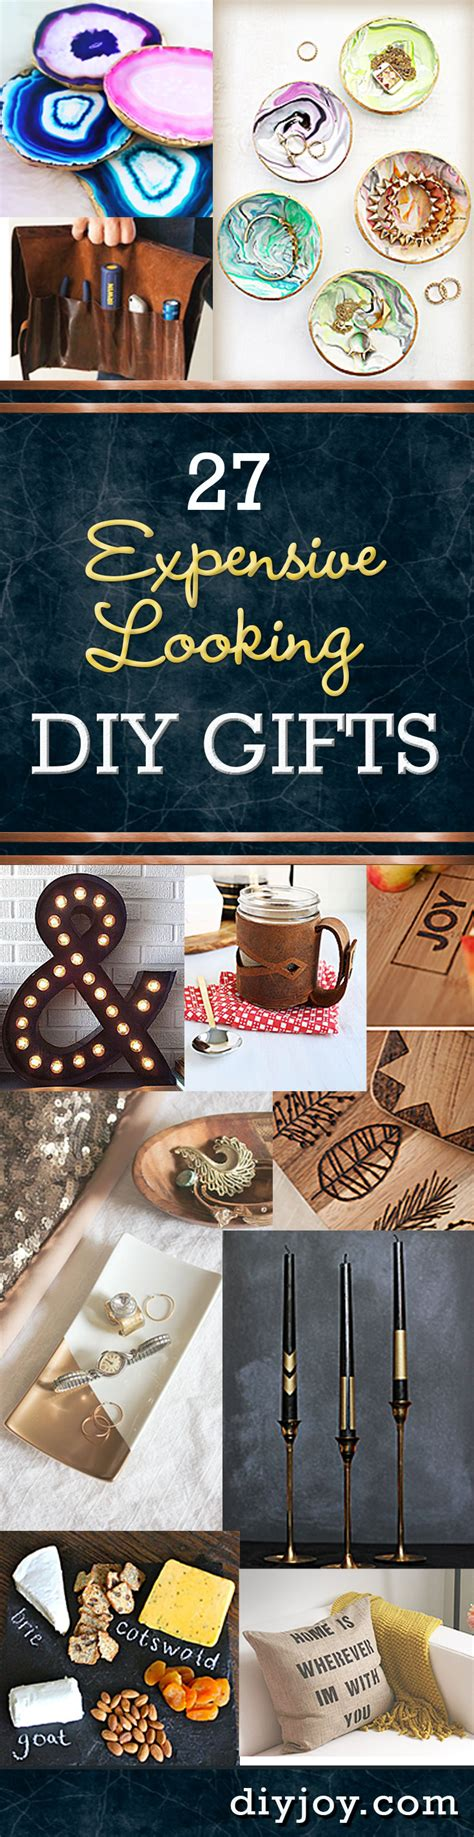 diy projects gifts 27 expensive looking inexpensive diy gifts